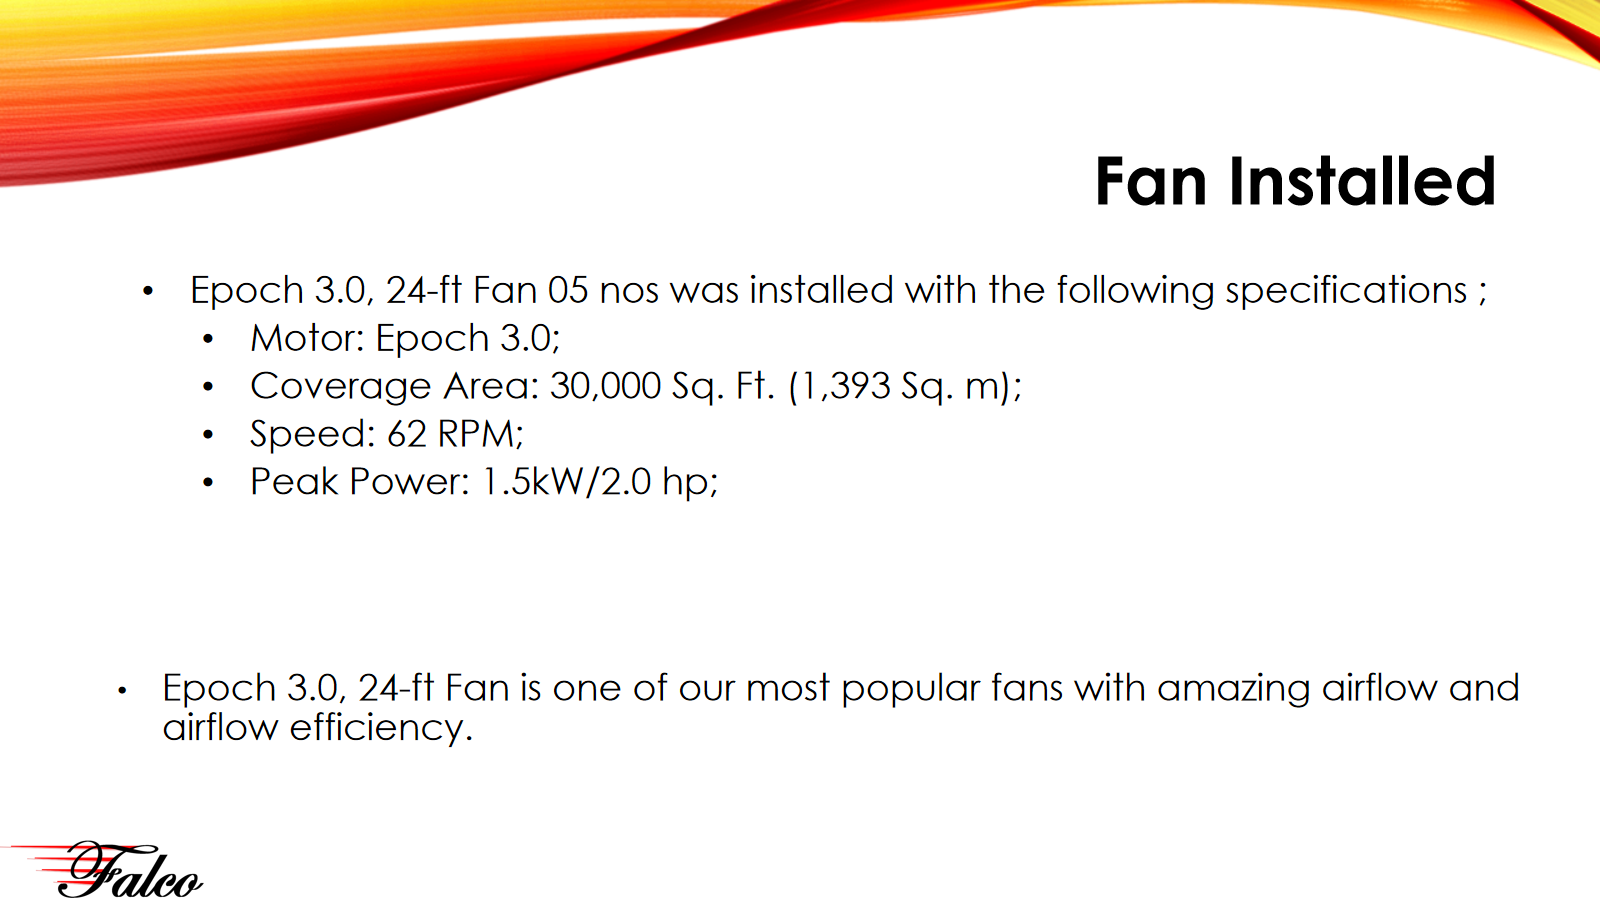 bic-cello-india-pvt.-ltd.-installed-epoch-hvls-fans-specification-4-.png